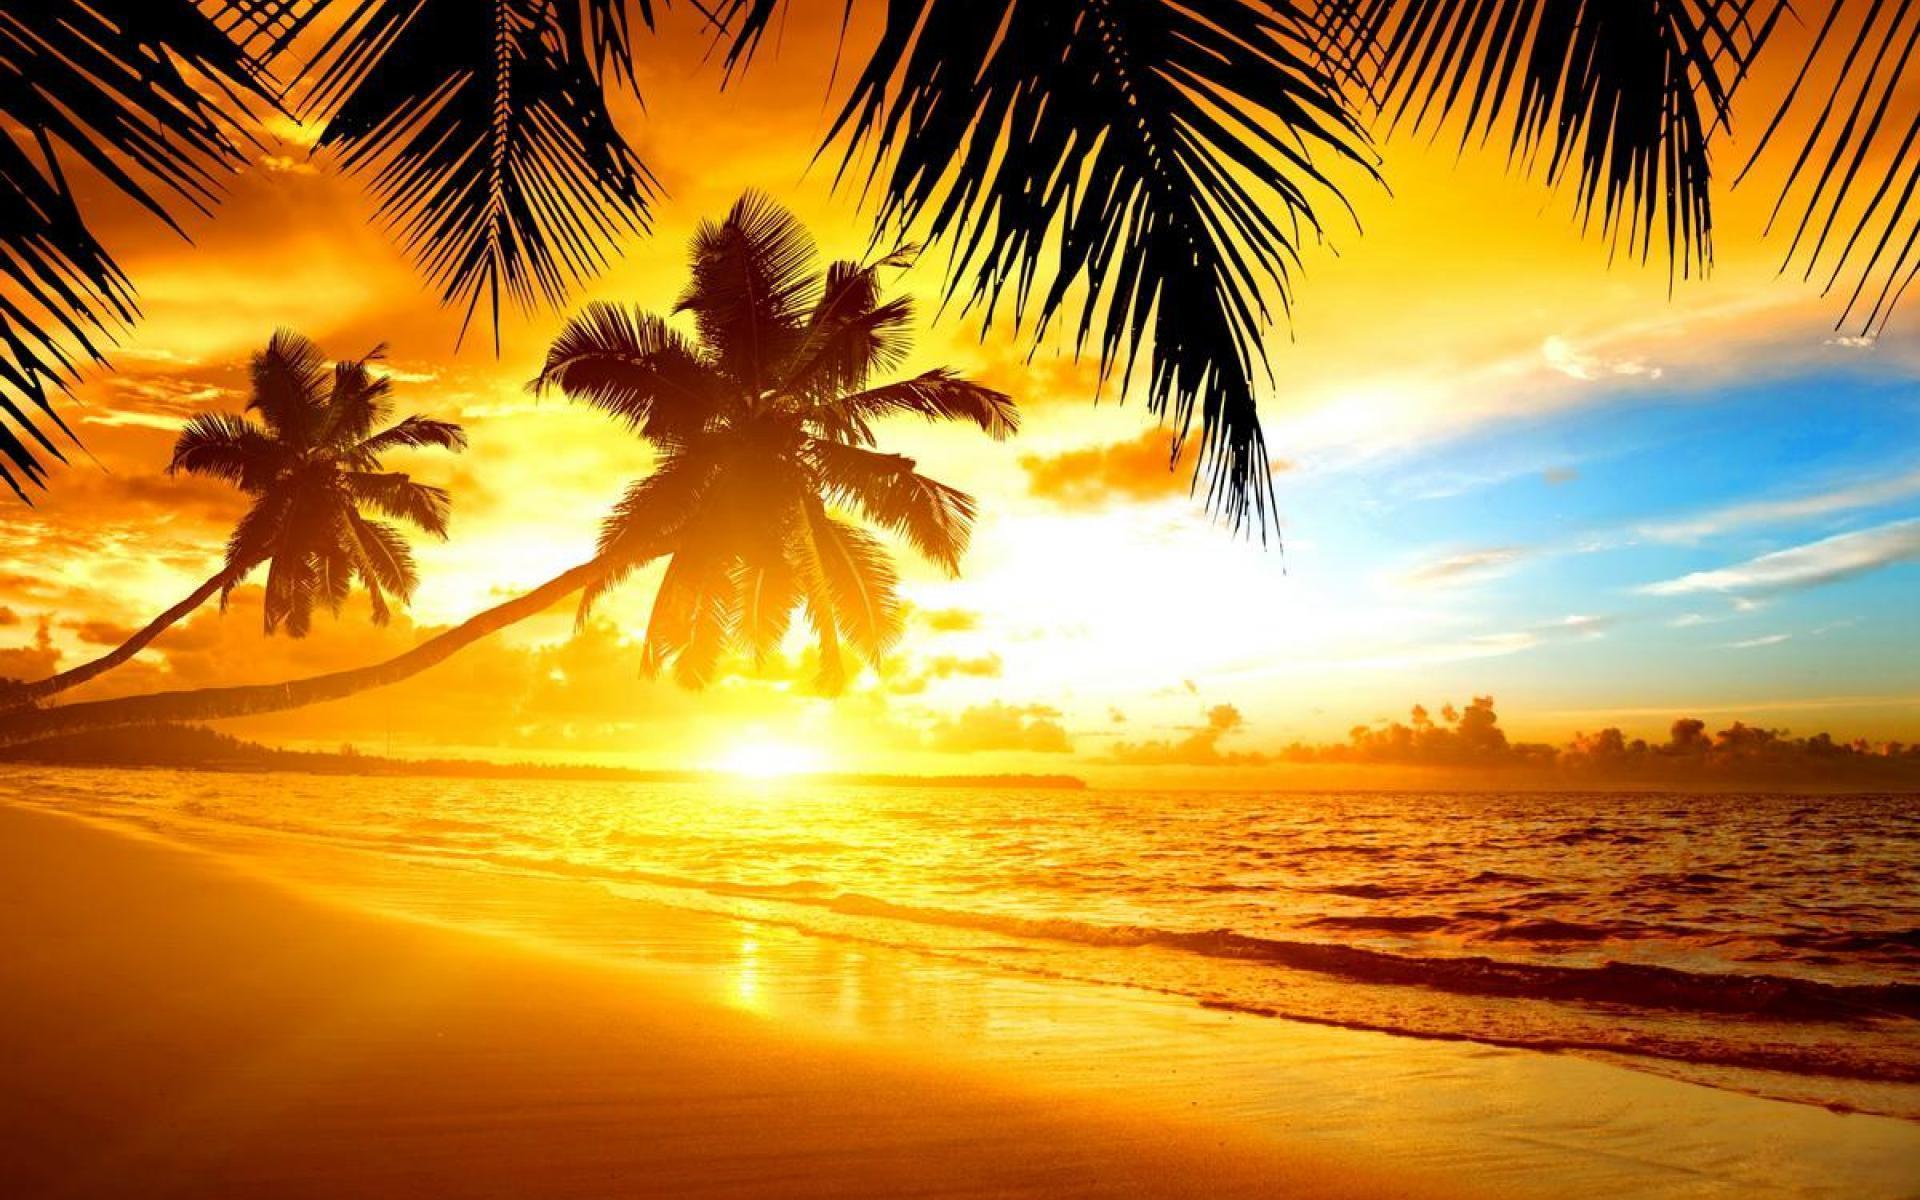 Tropical Island Beach Sunset Wallpaper 3953